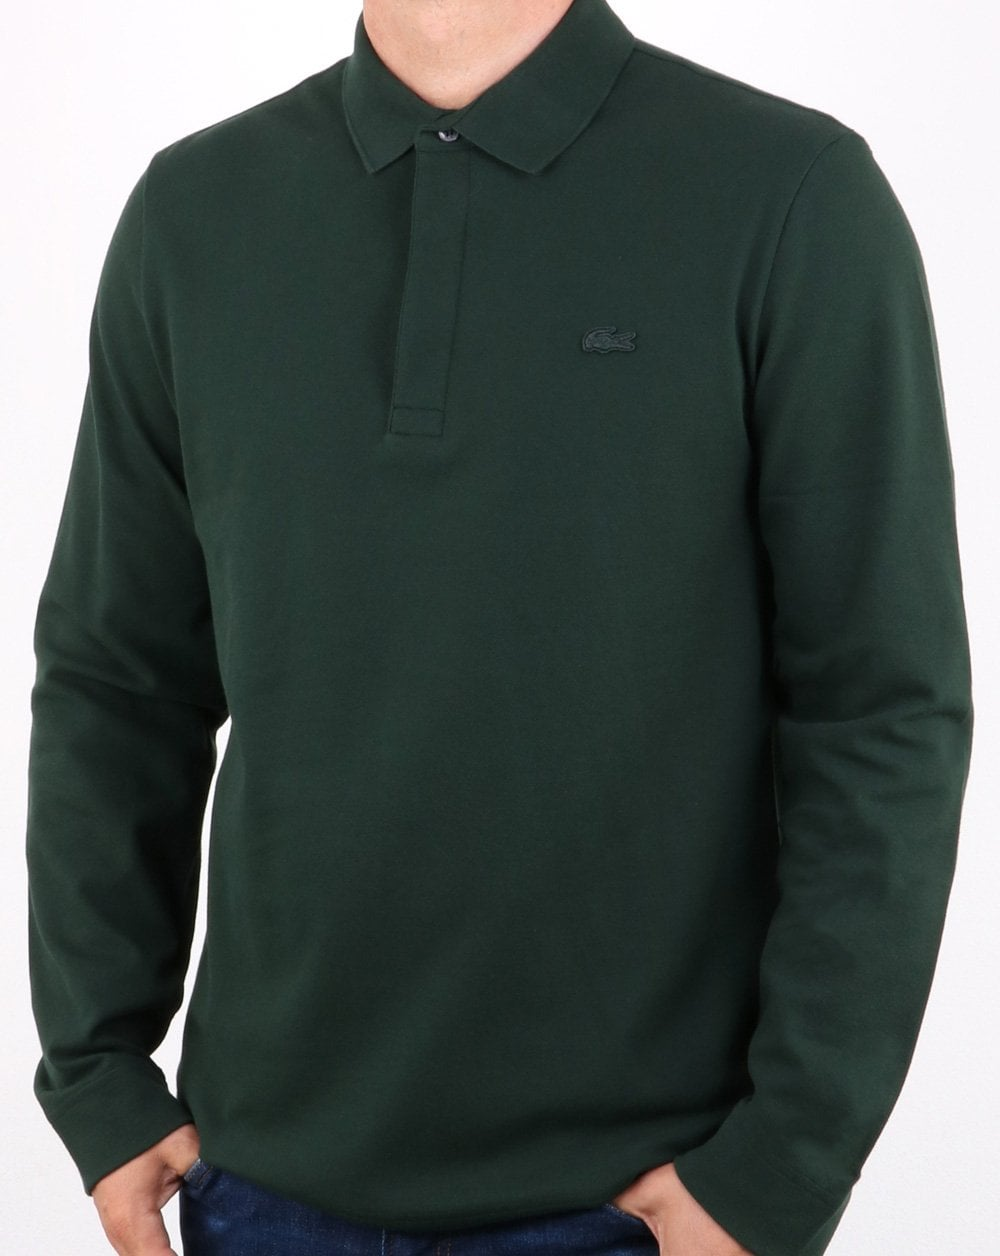 a8390c190d0cbd ... closeout lacoste lacoste long sleeve polo shirt dark green 5b183 354cc